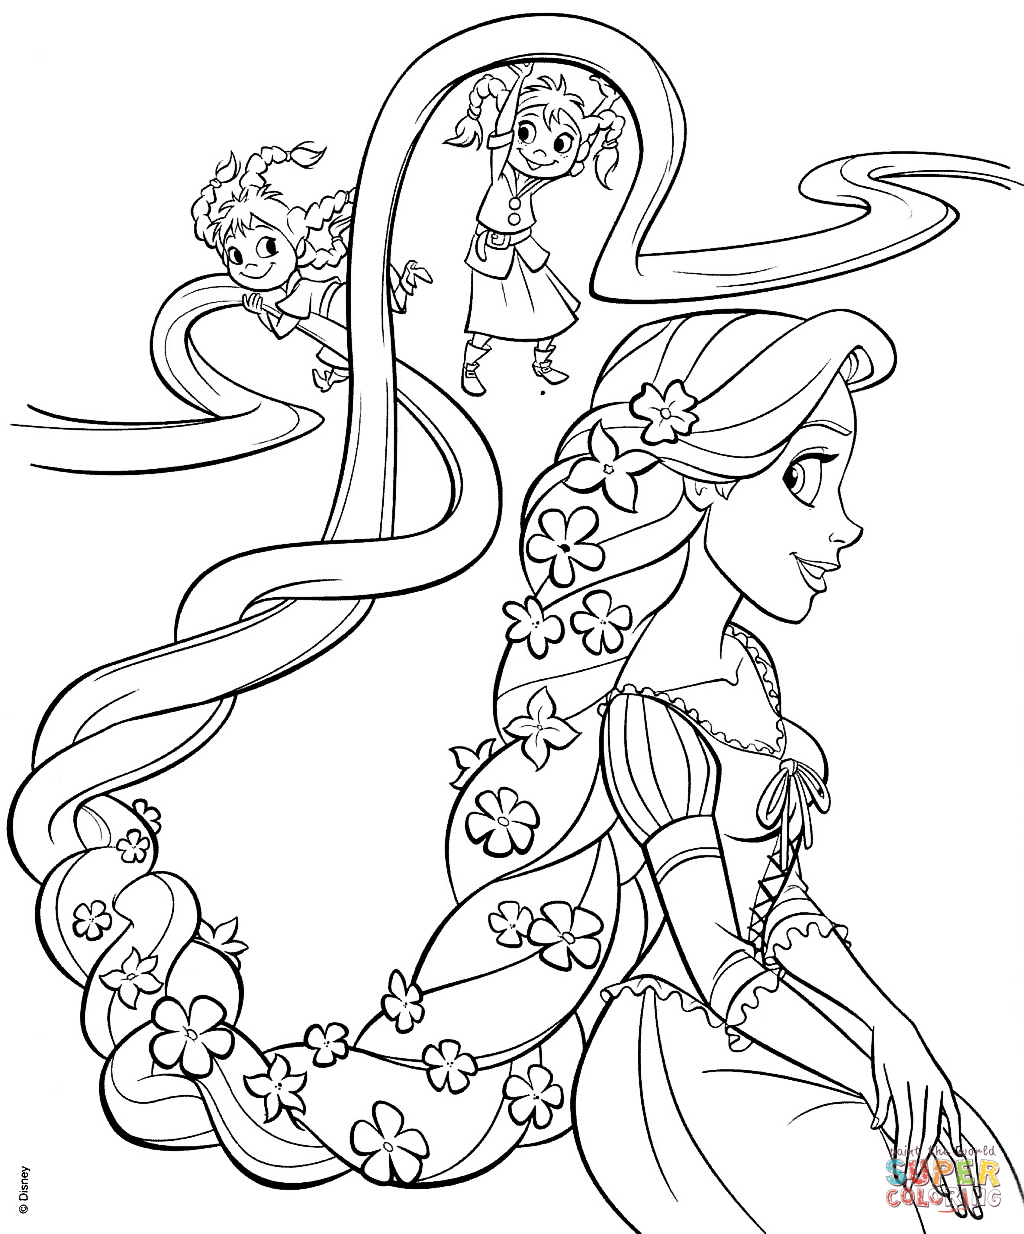 Tangled coloring #9, Download drawings